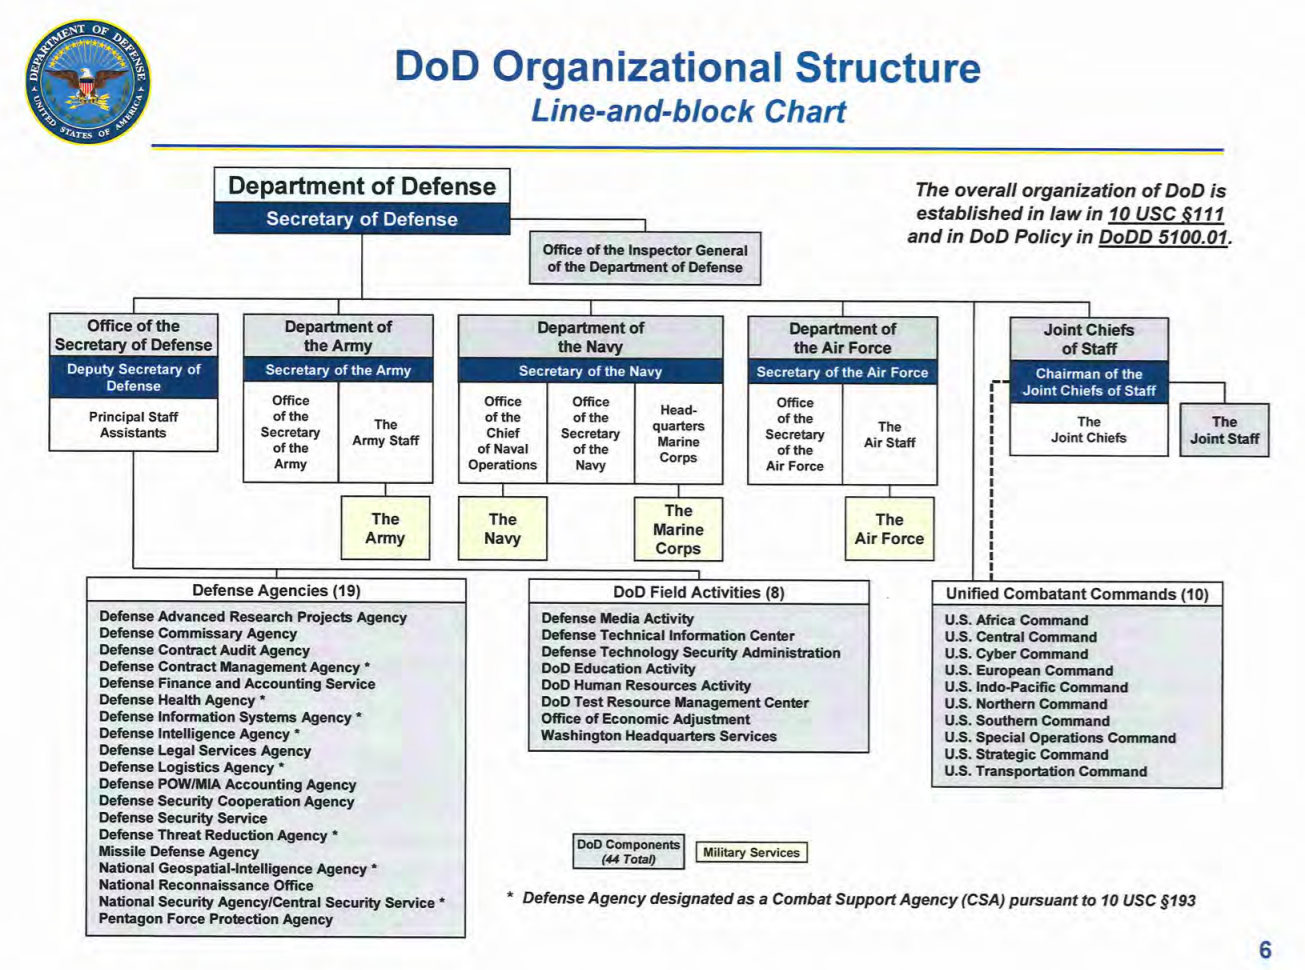 Organization of the Department of Defense